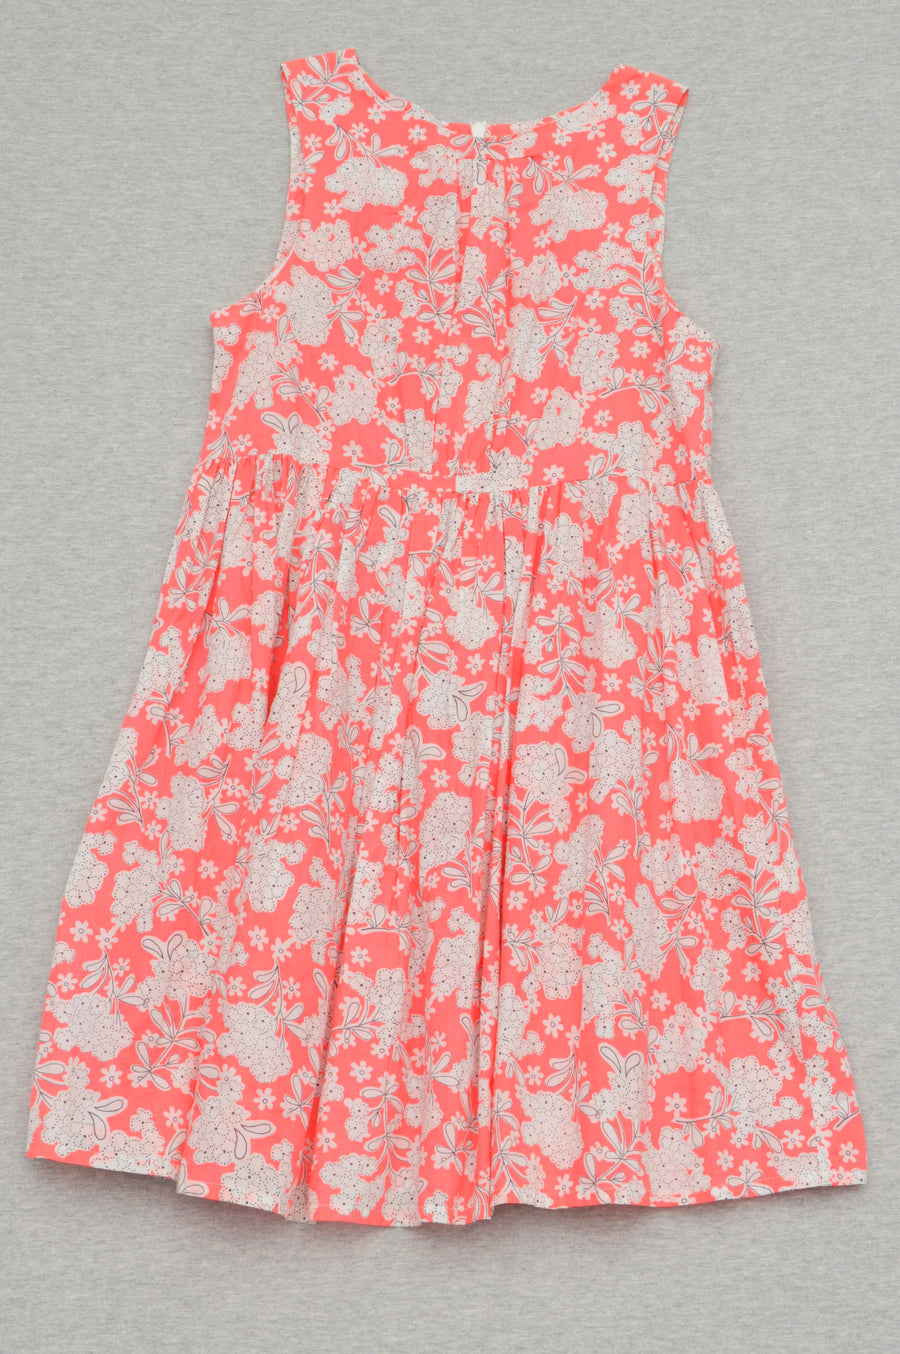 County Road - nearly new - fluro pink dress, size 10Y